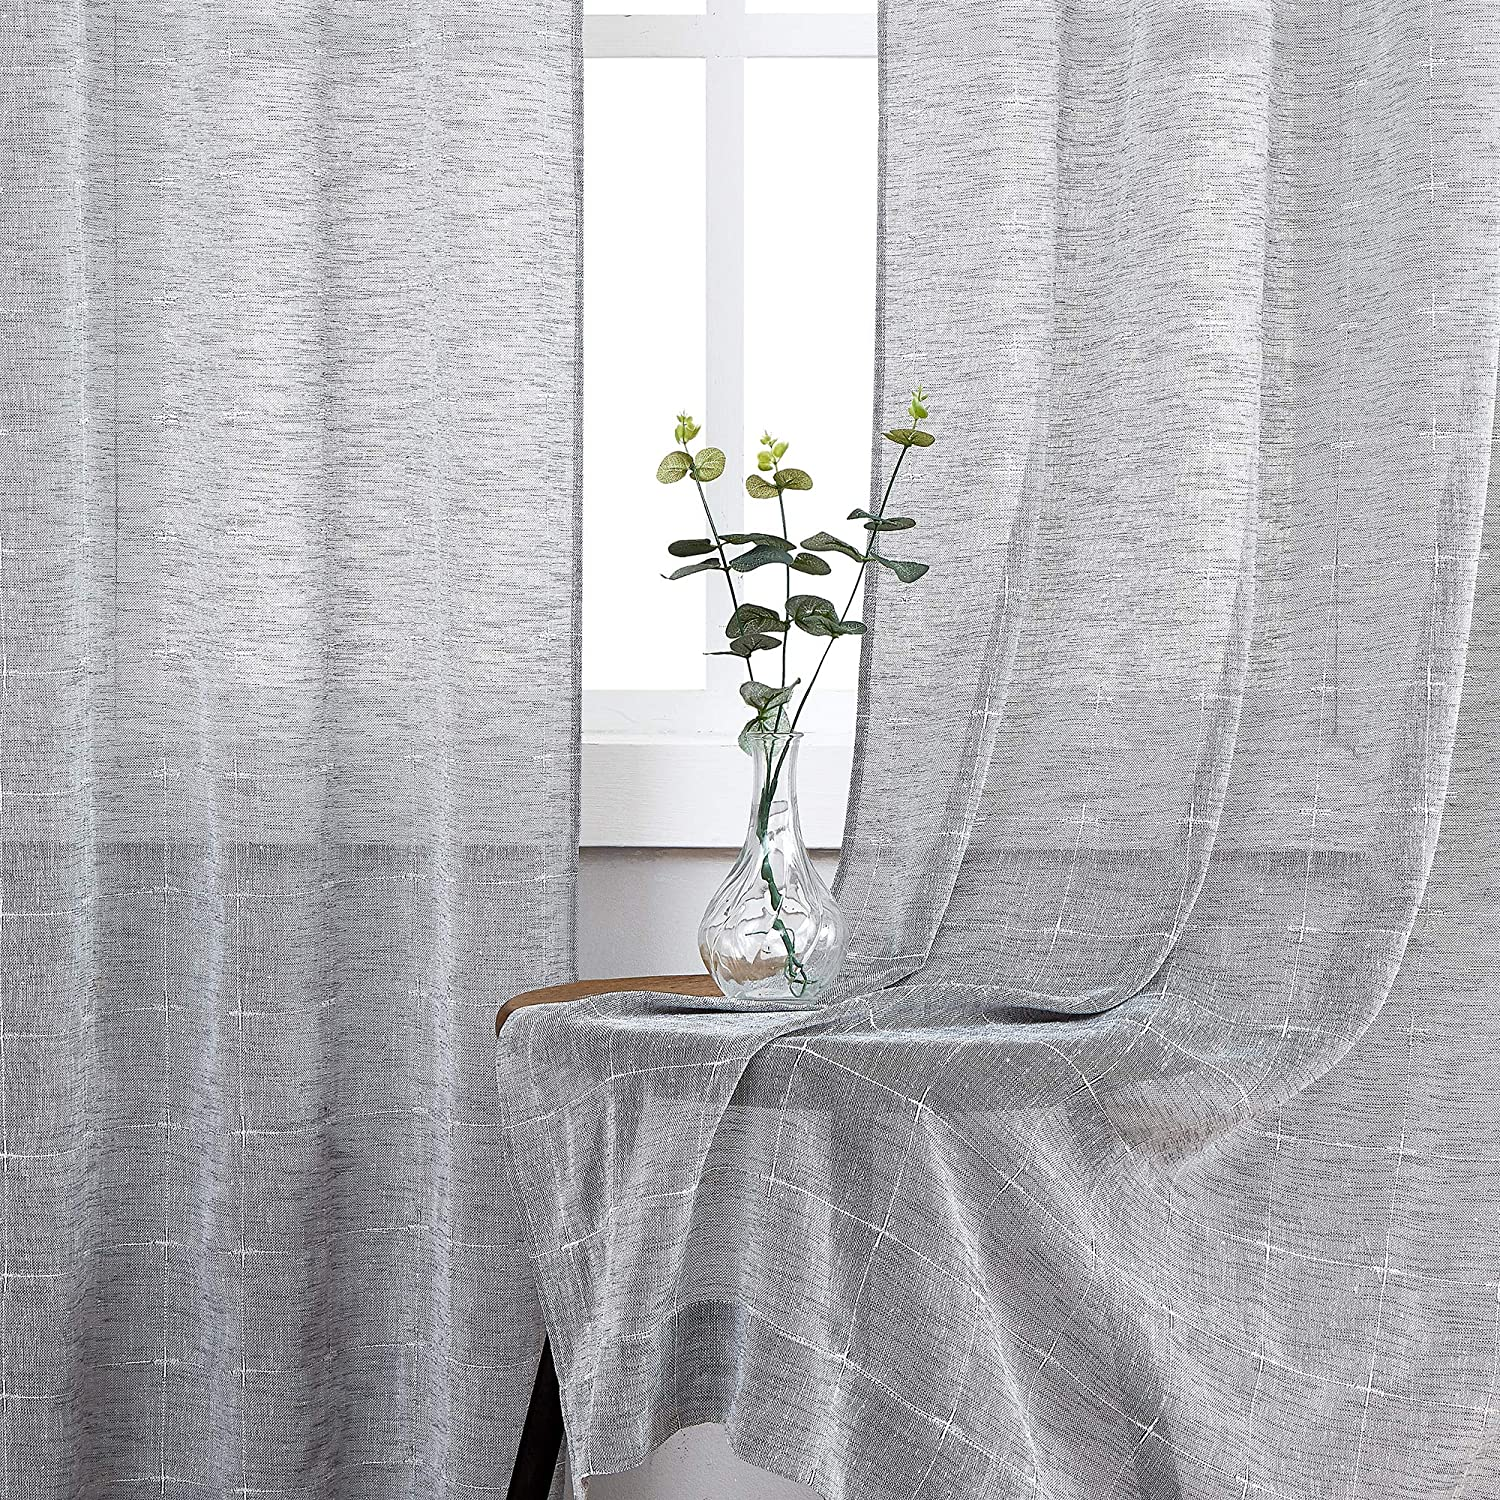 Central Park Gray Semi Sheer Curtain White GEO Cross Embroidery Panels Linen Texture Rod Pocket Window Treatment Drape Sets for Living and Bedroom Farmhouse 108 inches Long, 2 Panels, Gray